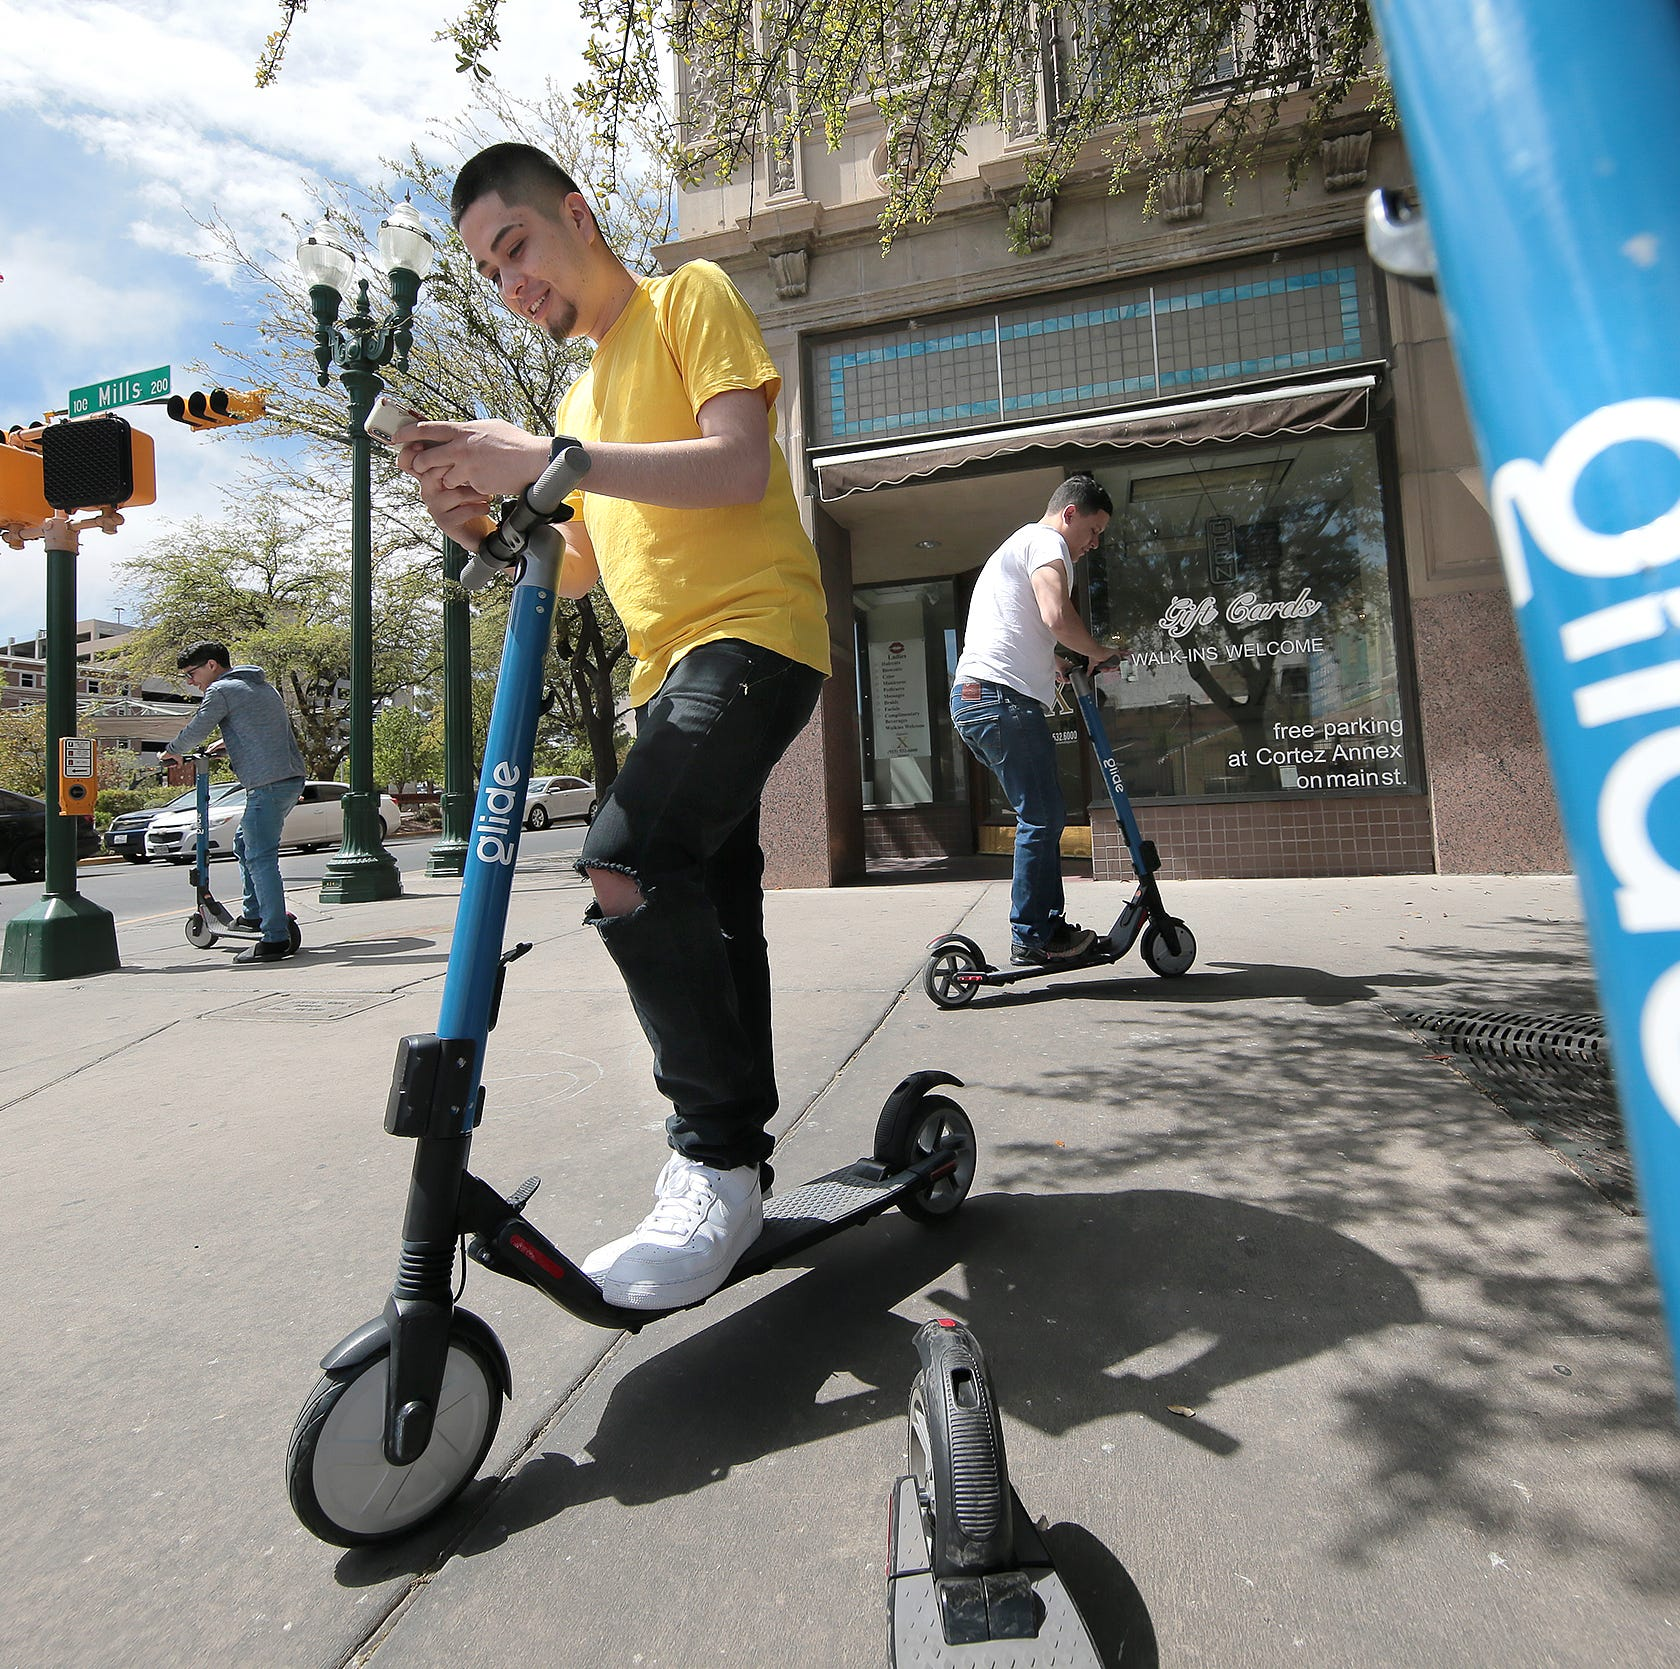 Electric scooters roll out in Downtown El Paso as part of pilot program